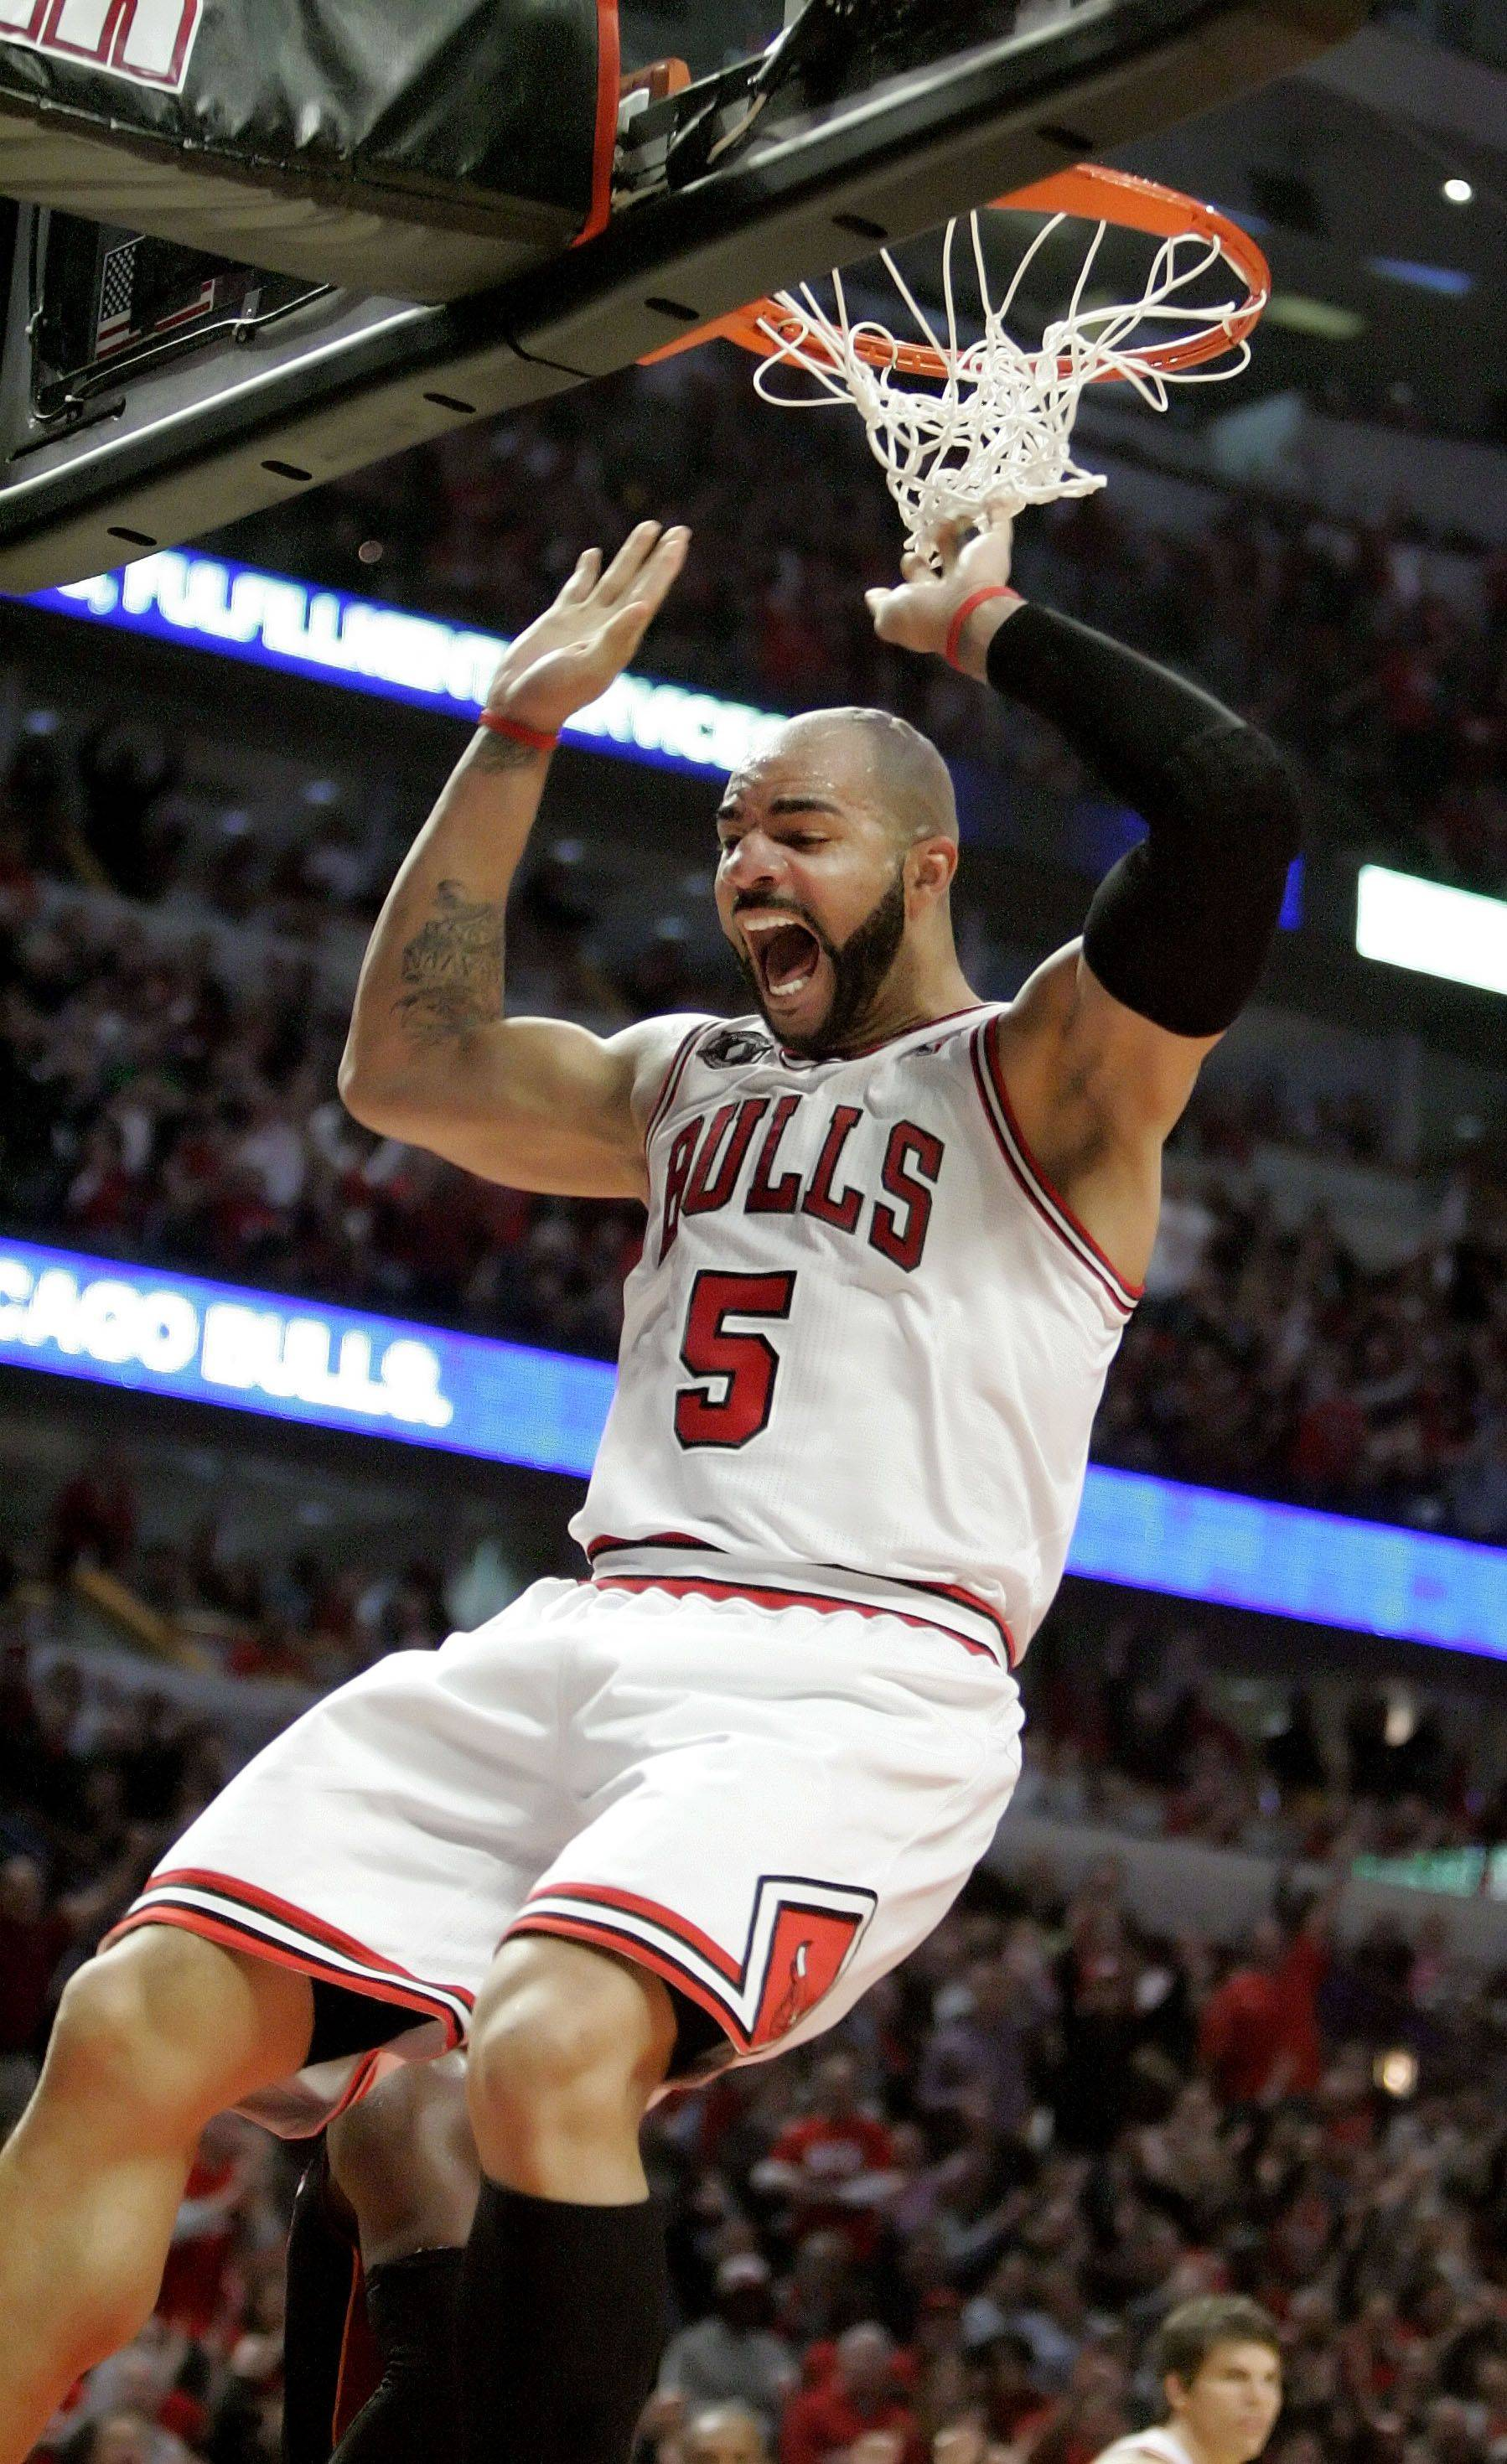 Chicago Bulls power forward Carlos Boozer cheers after a dunk during game one of the Eastern Conference finals.